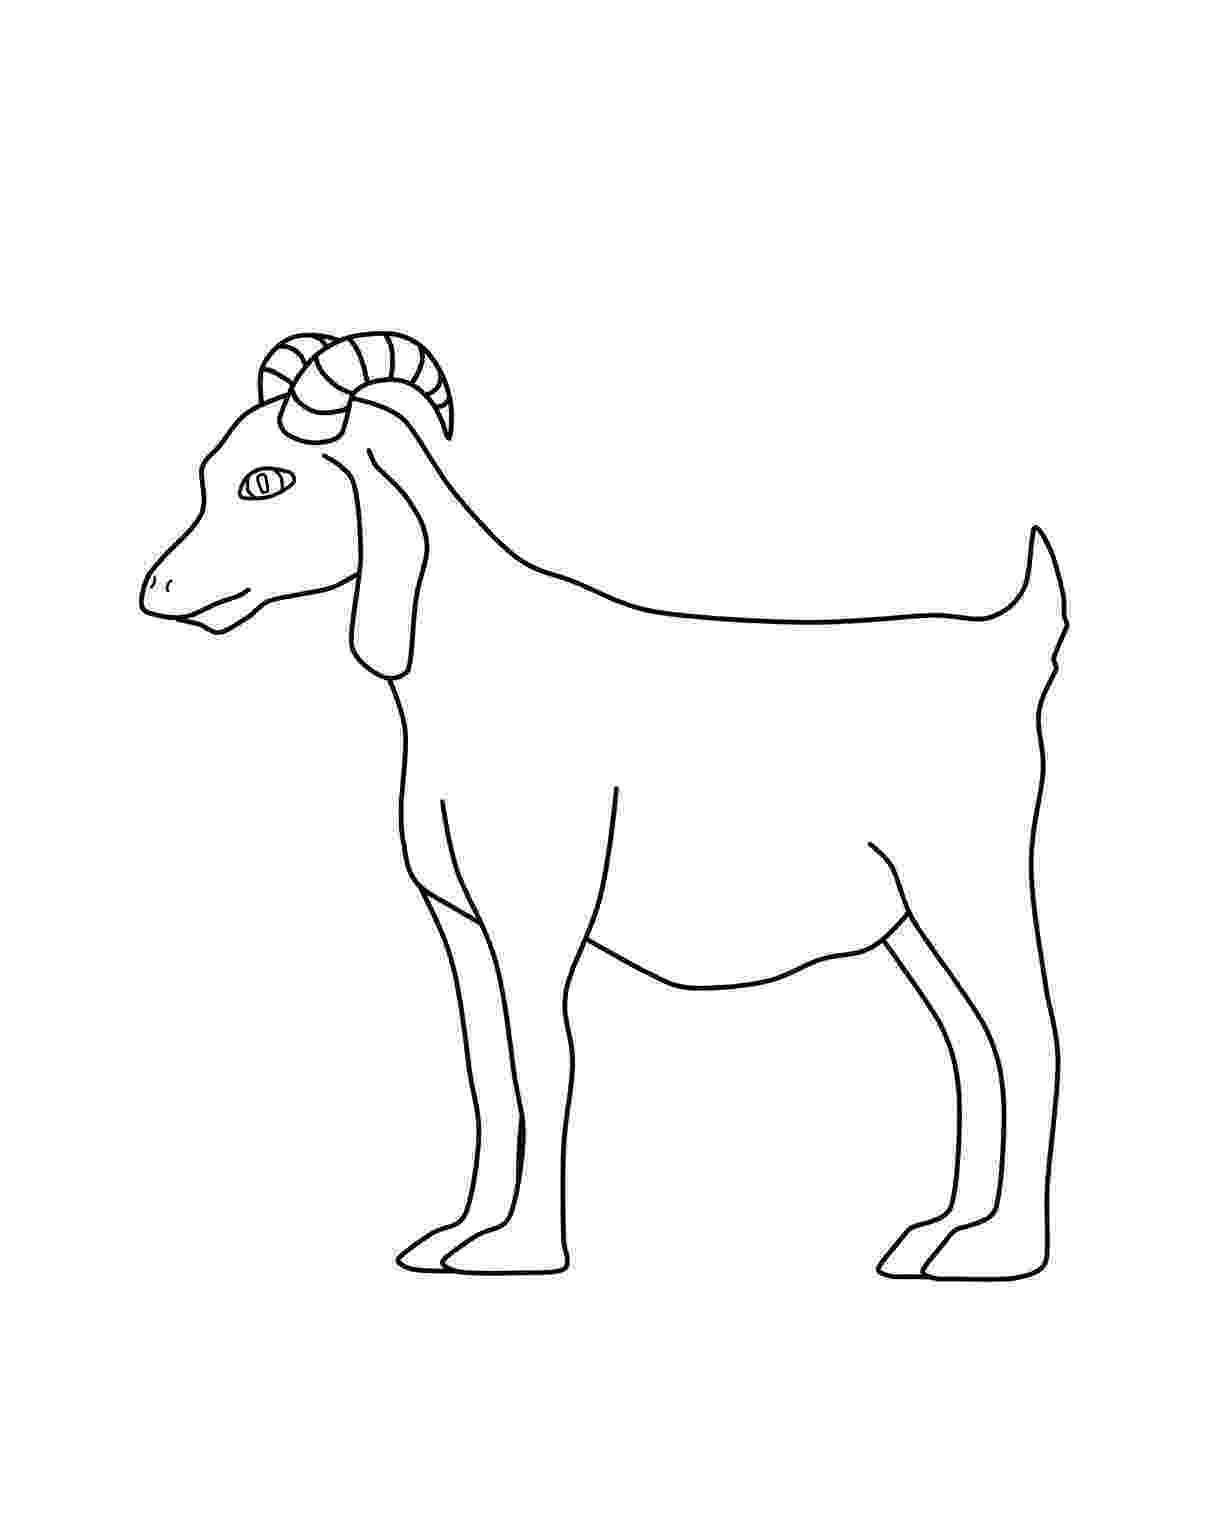 goat to color free printable goat coloring pages for kids goat color to